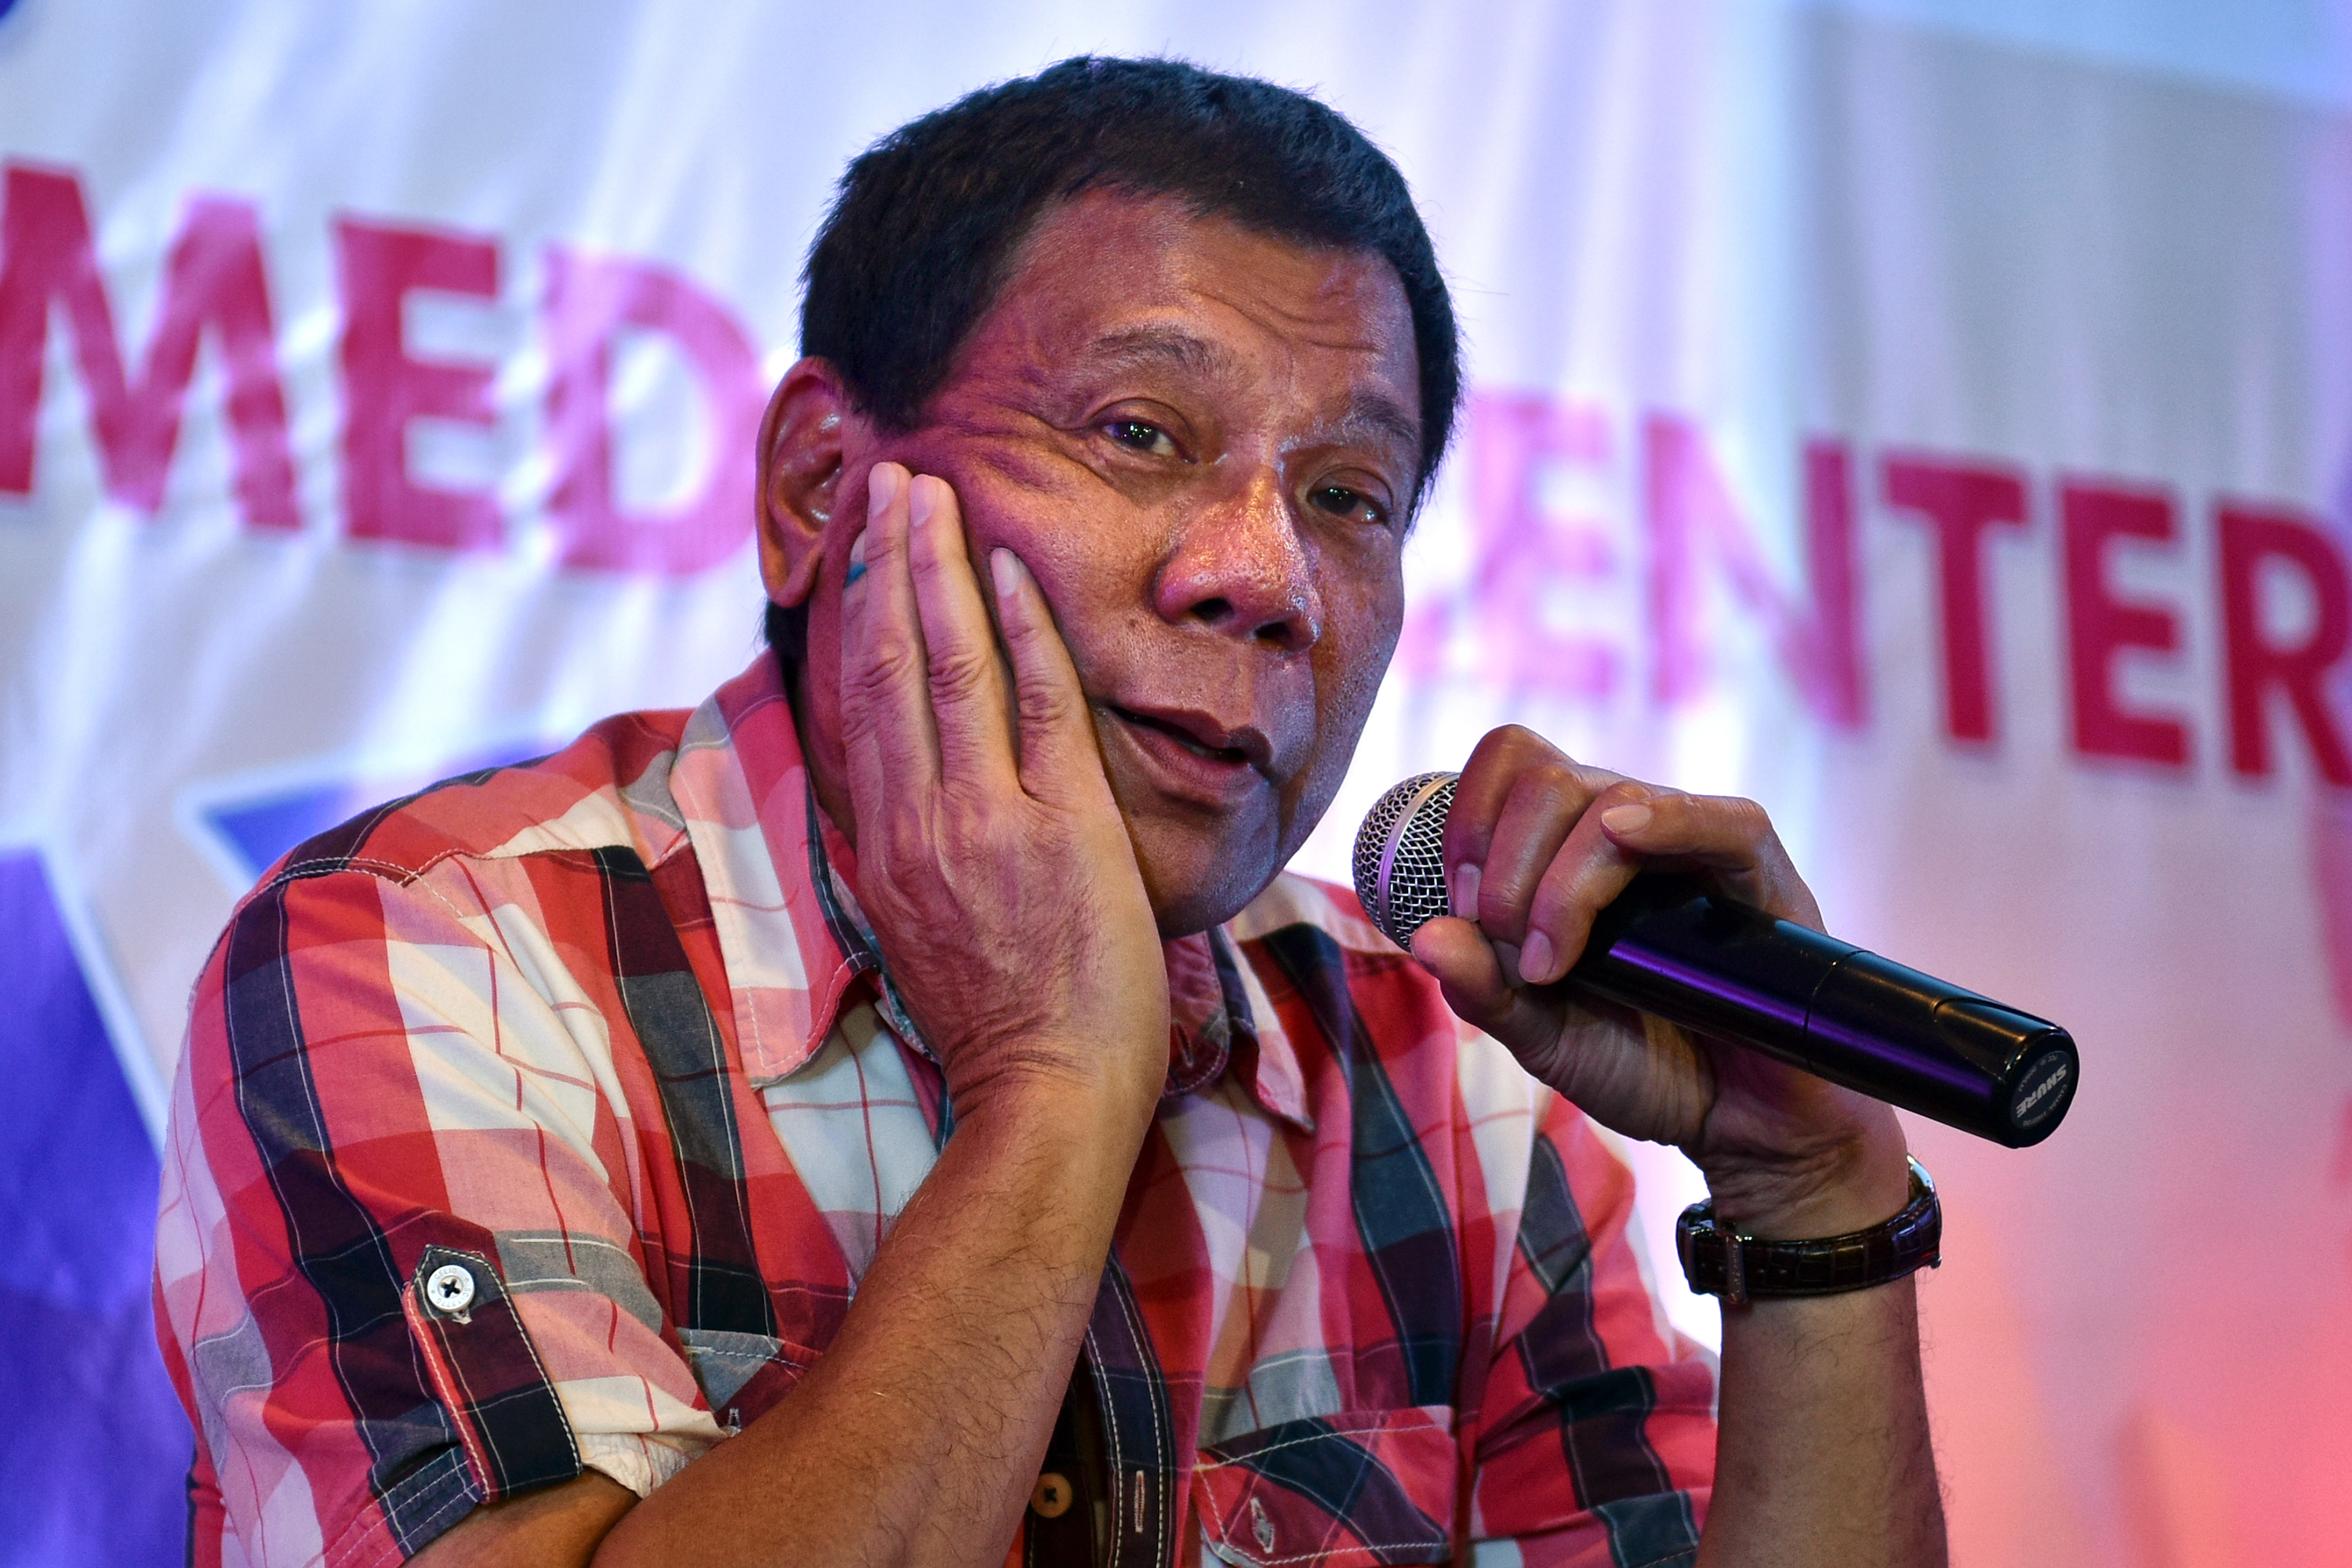 Rodrigo Duterte answers questions from journalists during a press conference on May 10, 2016, in Davao City, the Philippines